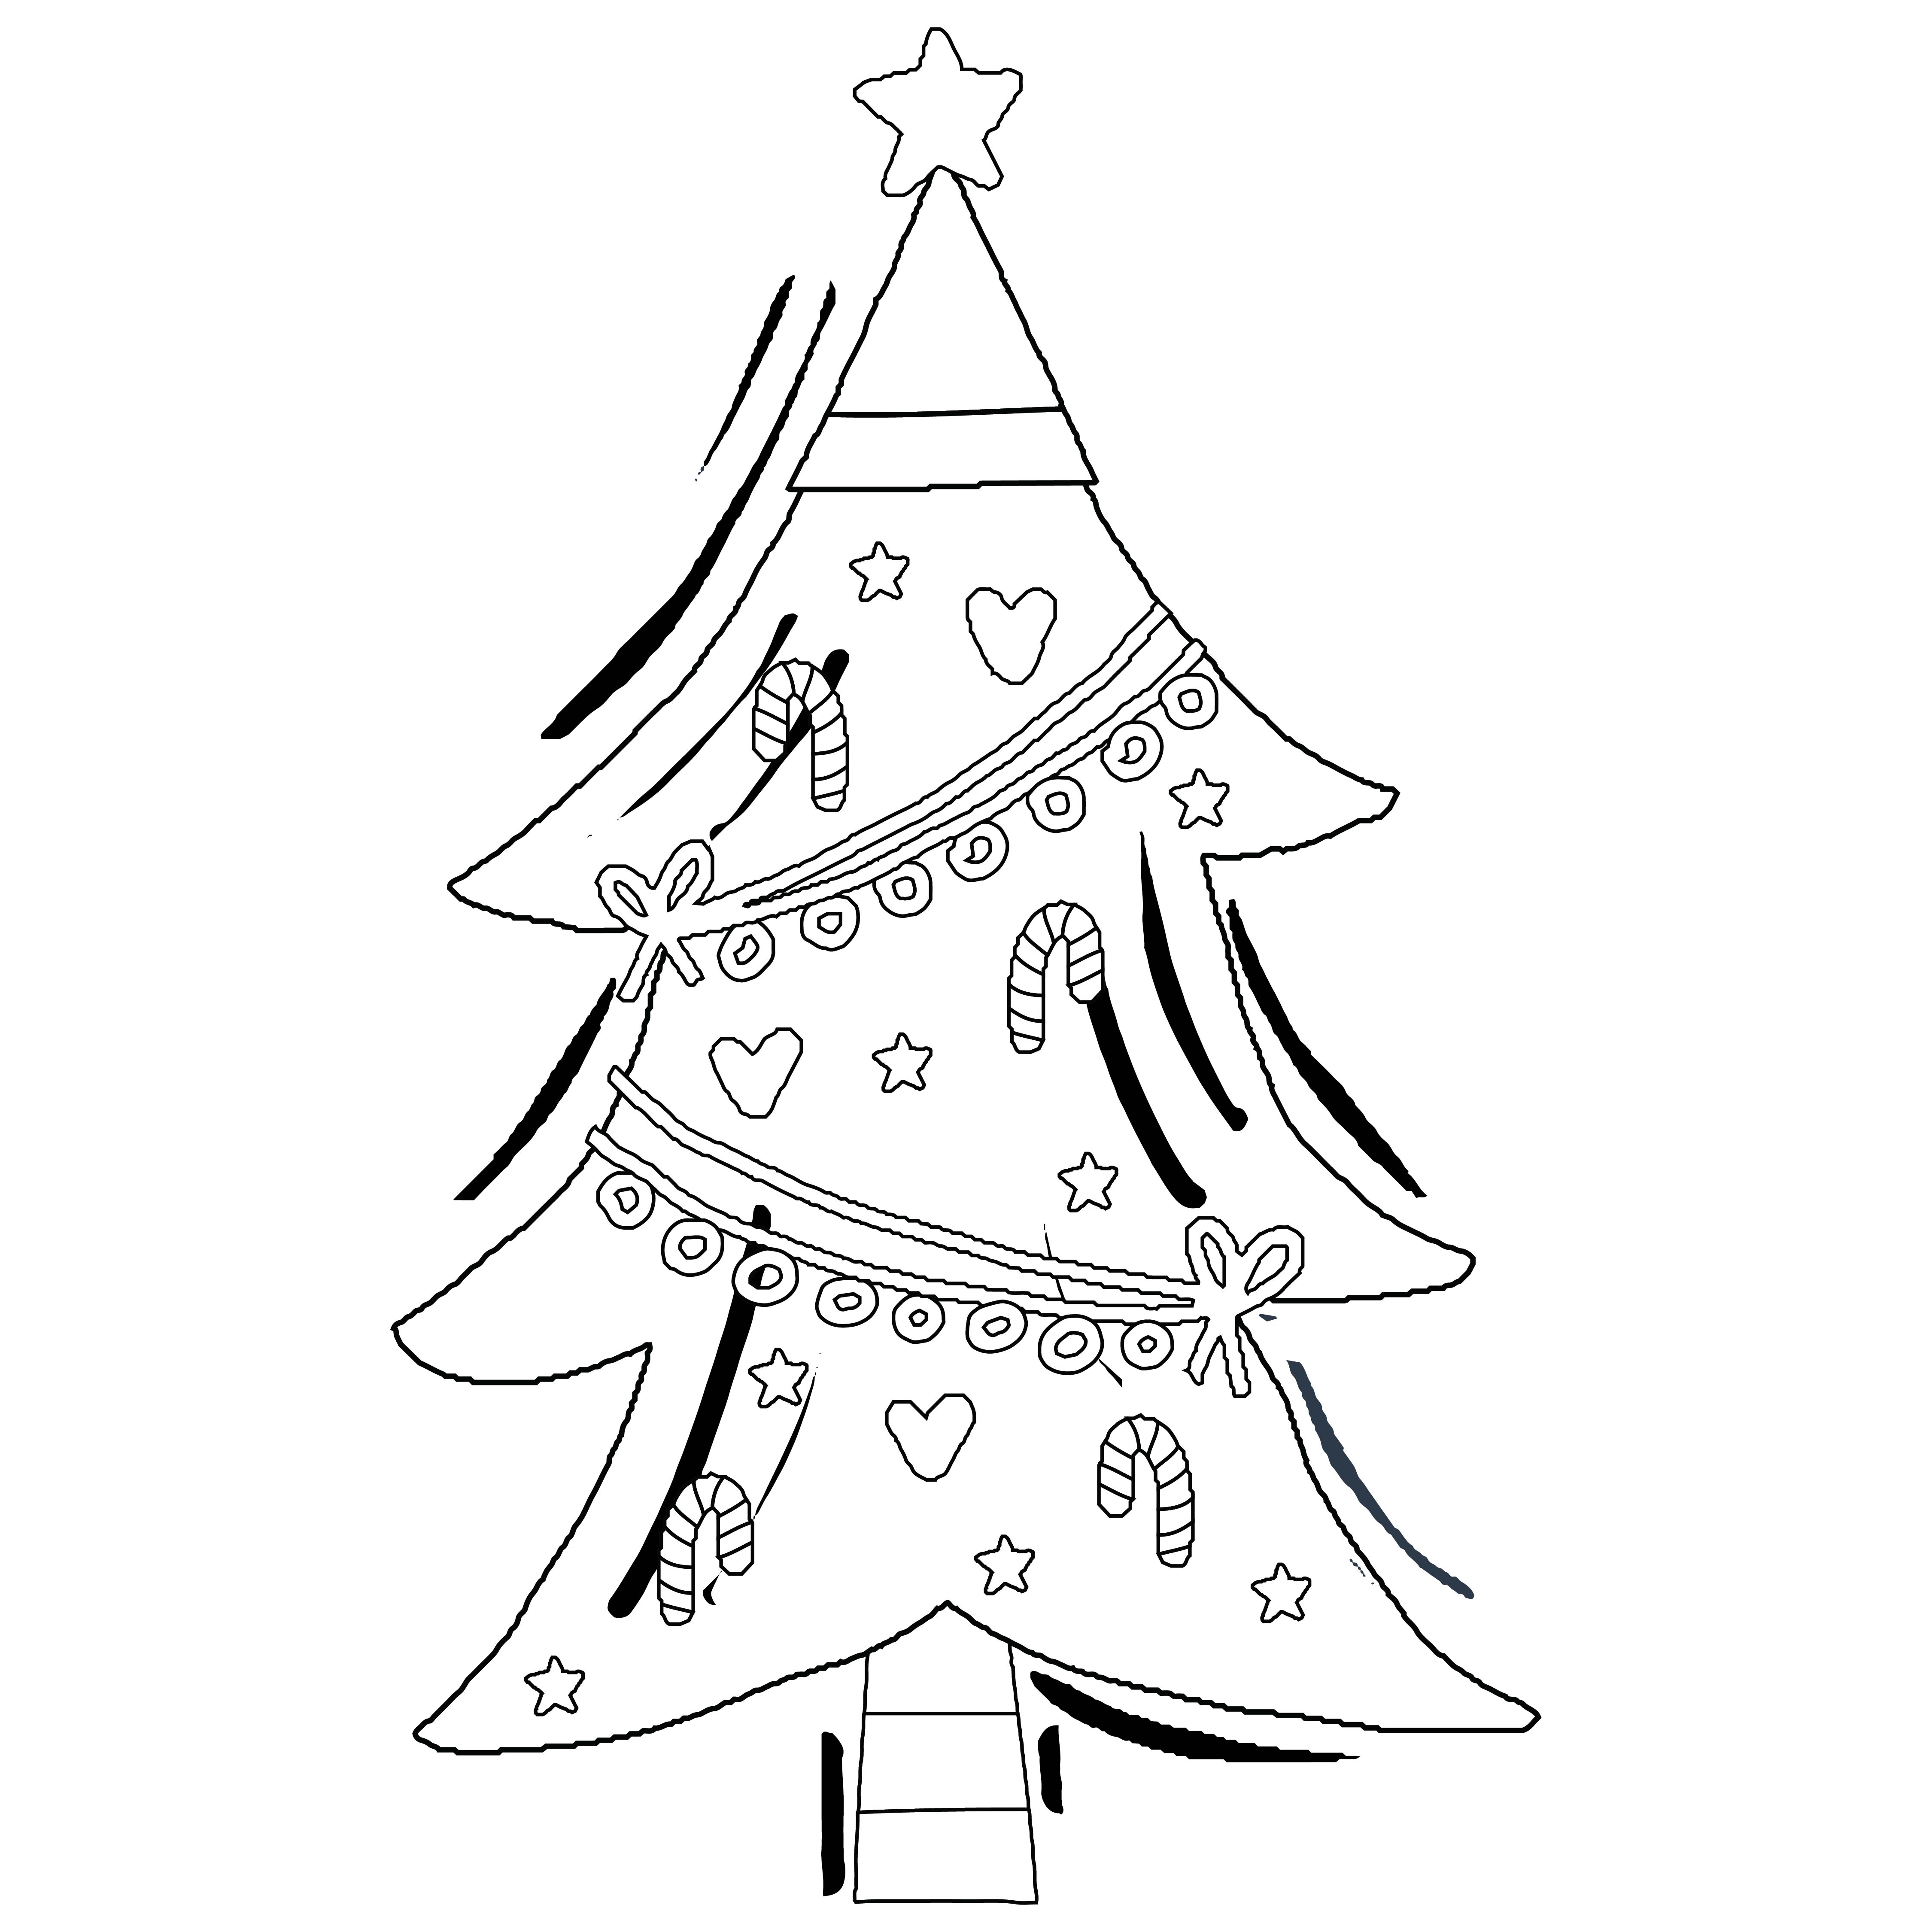 7 Images of Preschool Printables Christmas Tree